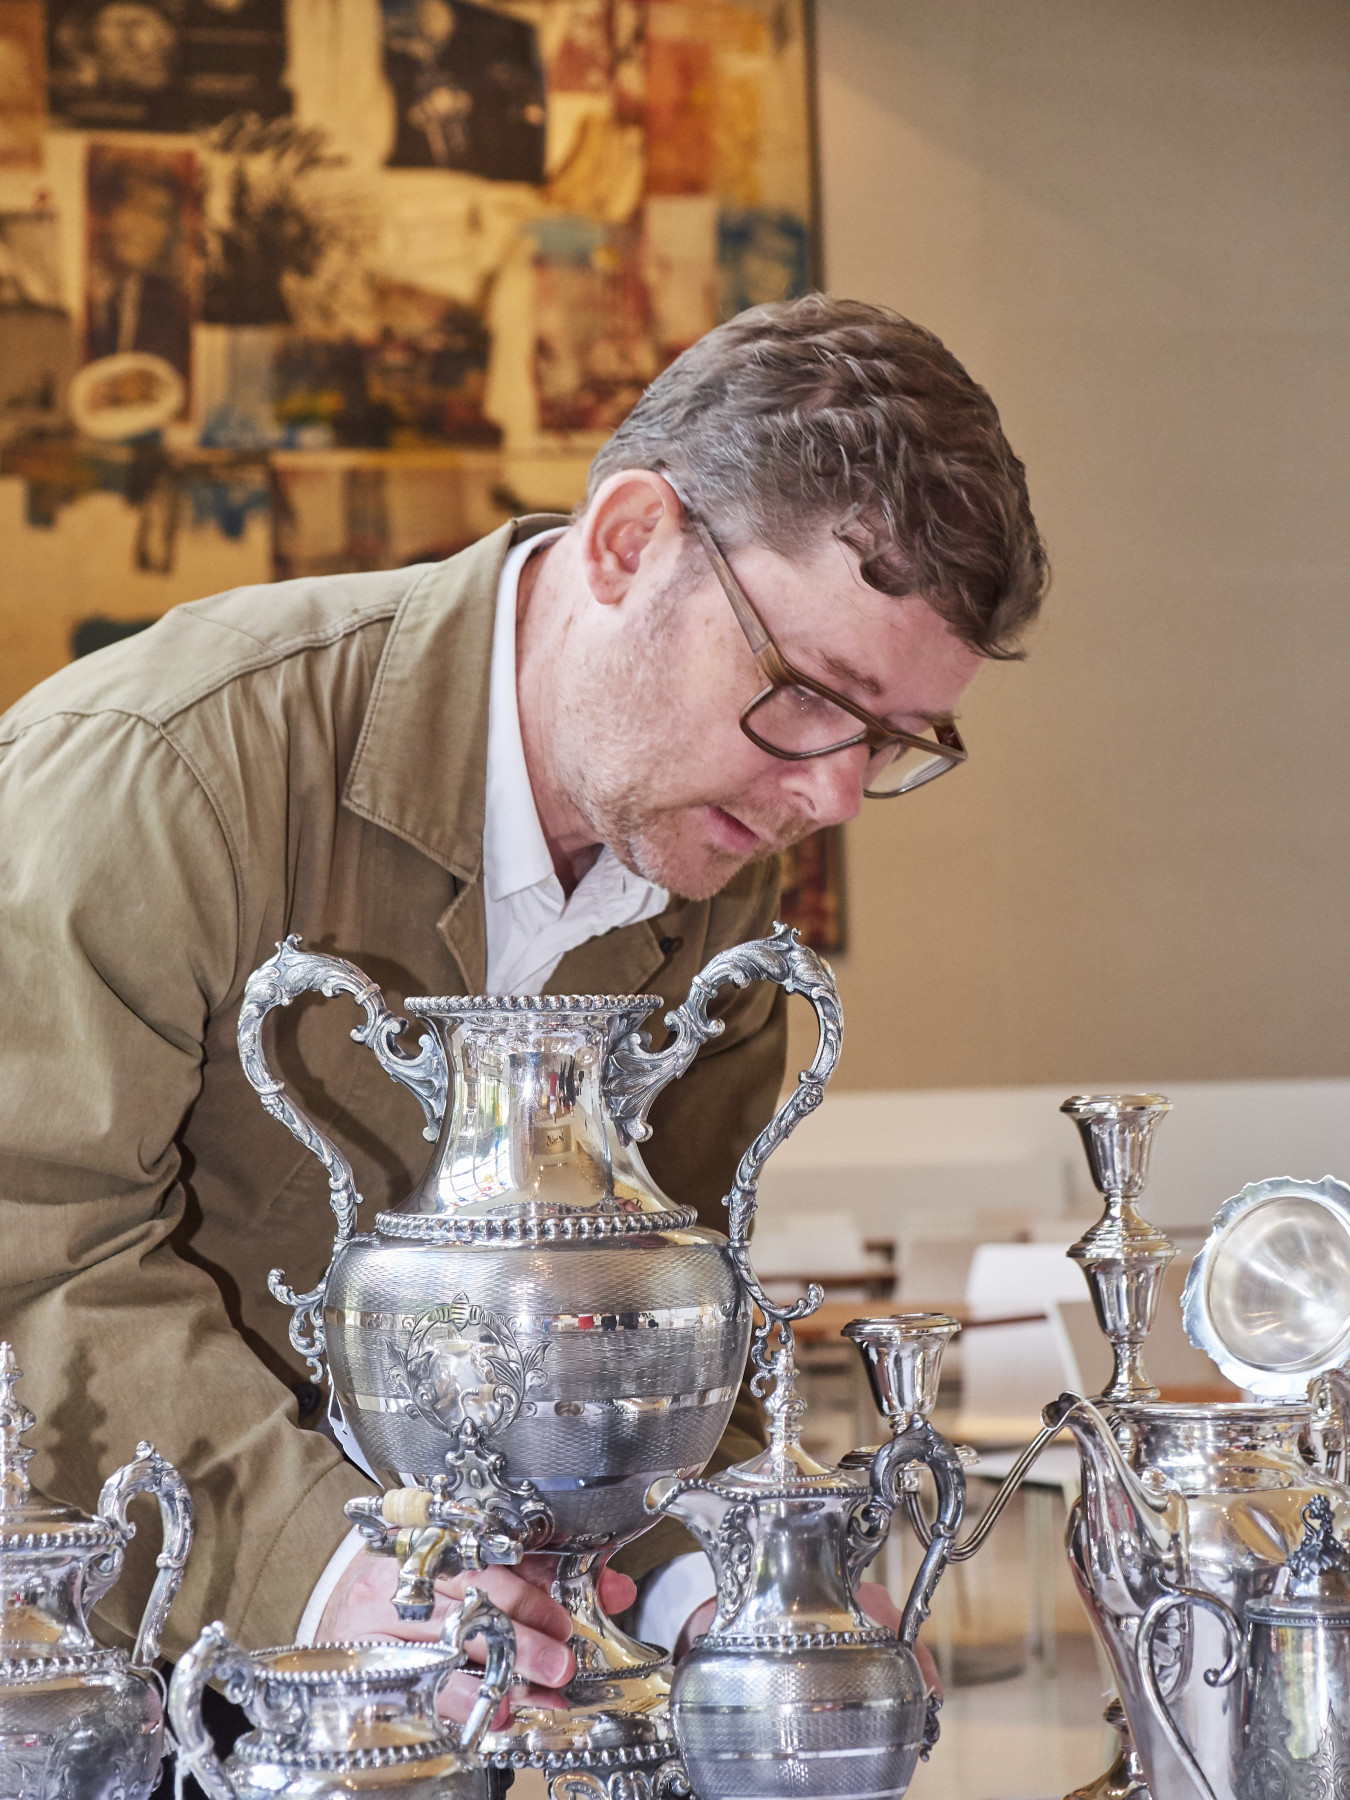 Image of David Clarke in Dallas Museum of Art looking at silverware donated to the 'Family Matter' project.